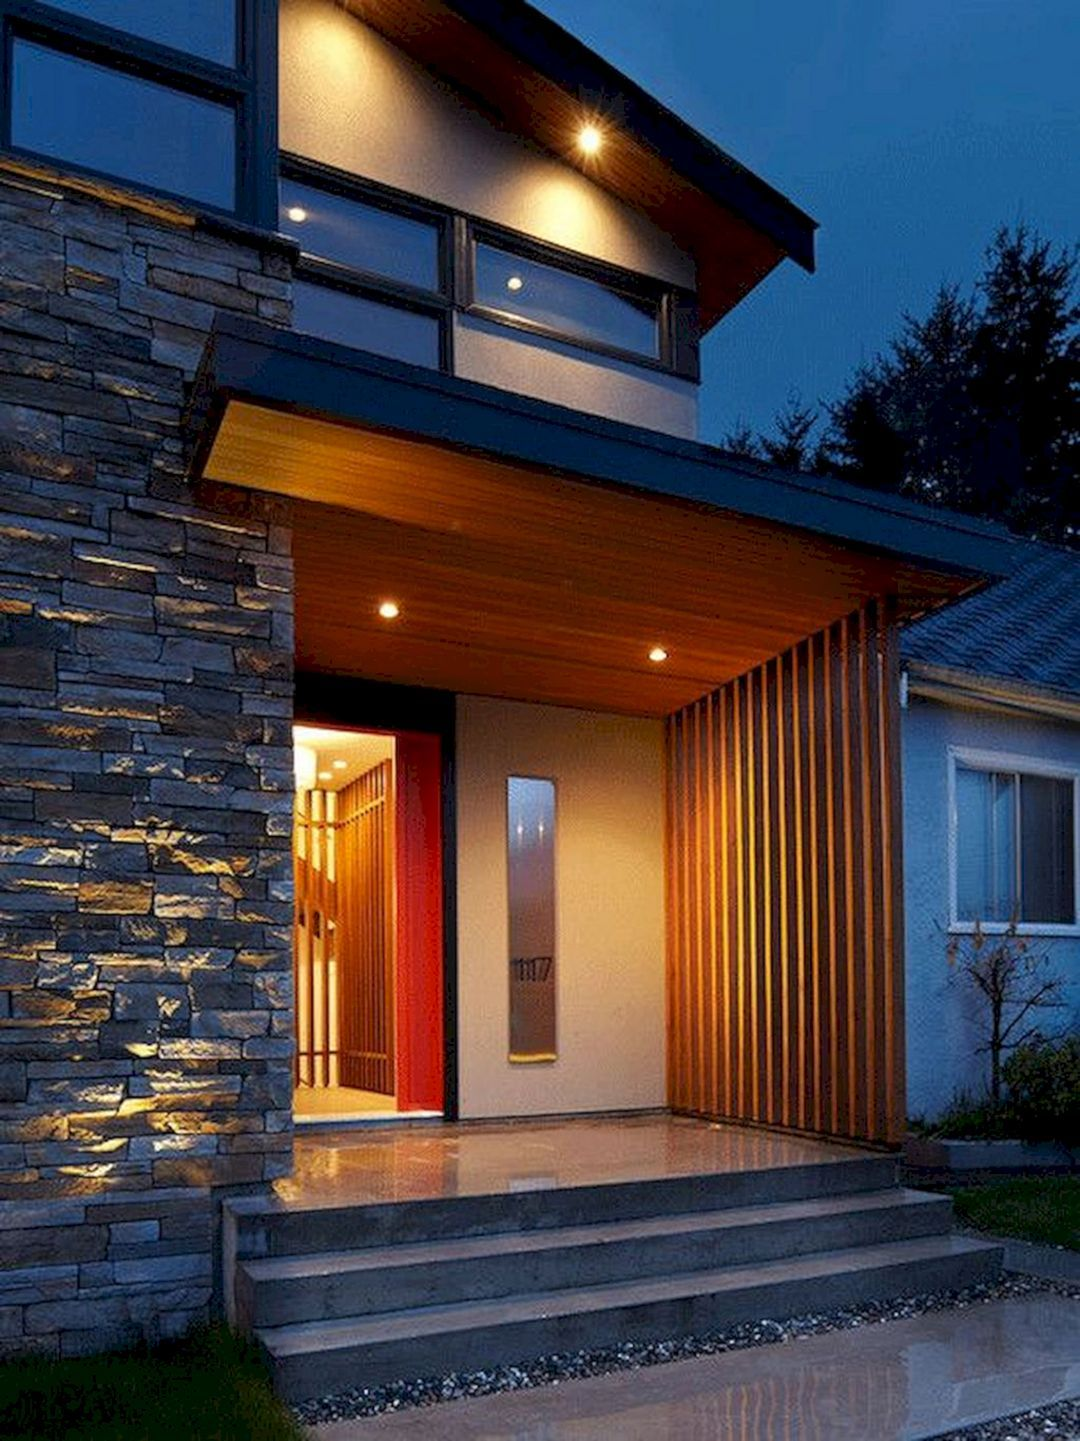 18 Amazing Contemporary Home Exterior Design Ideas: 10+ Best Modern Entrance Decoration Ideas For Amazing Home Inspiration